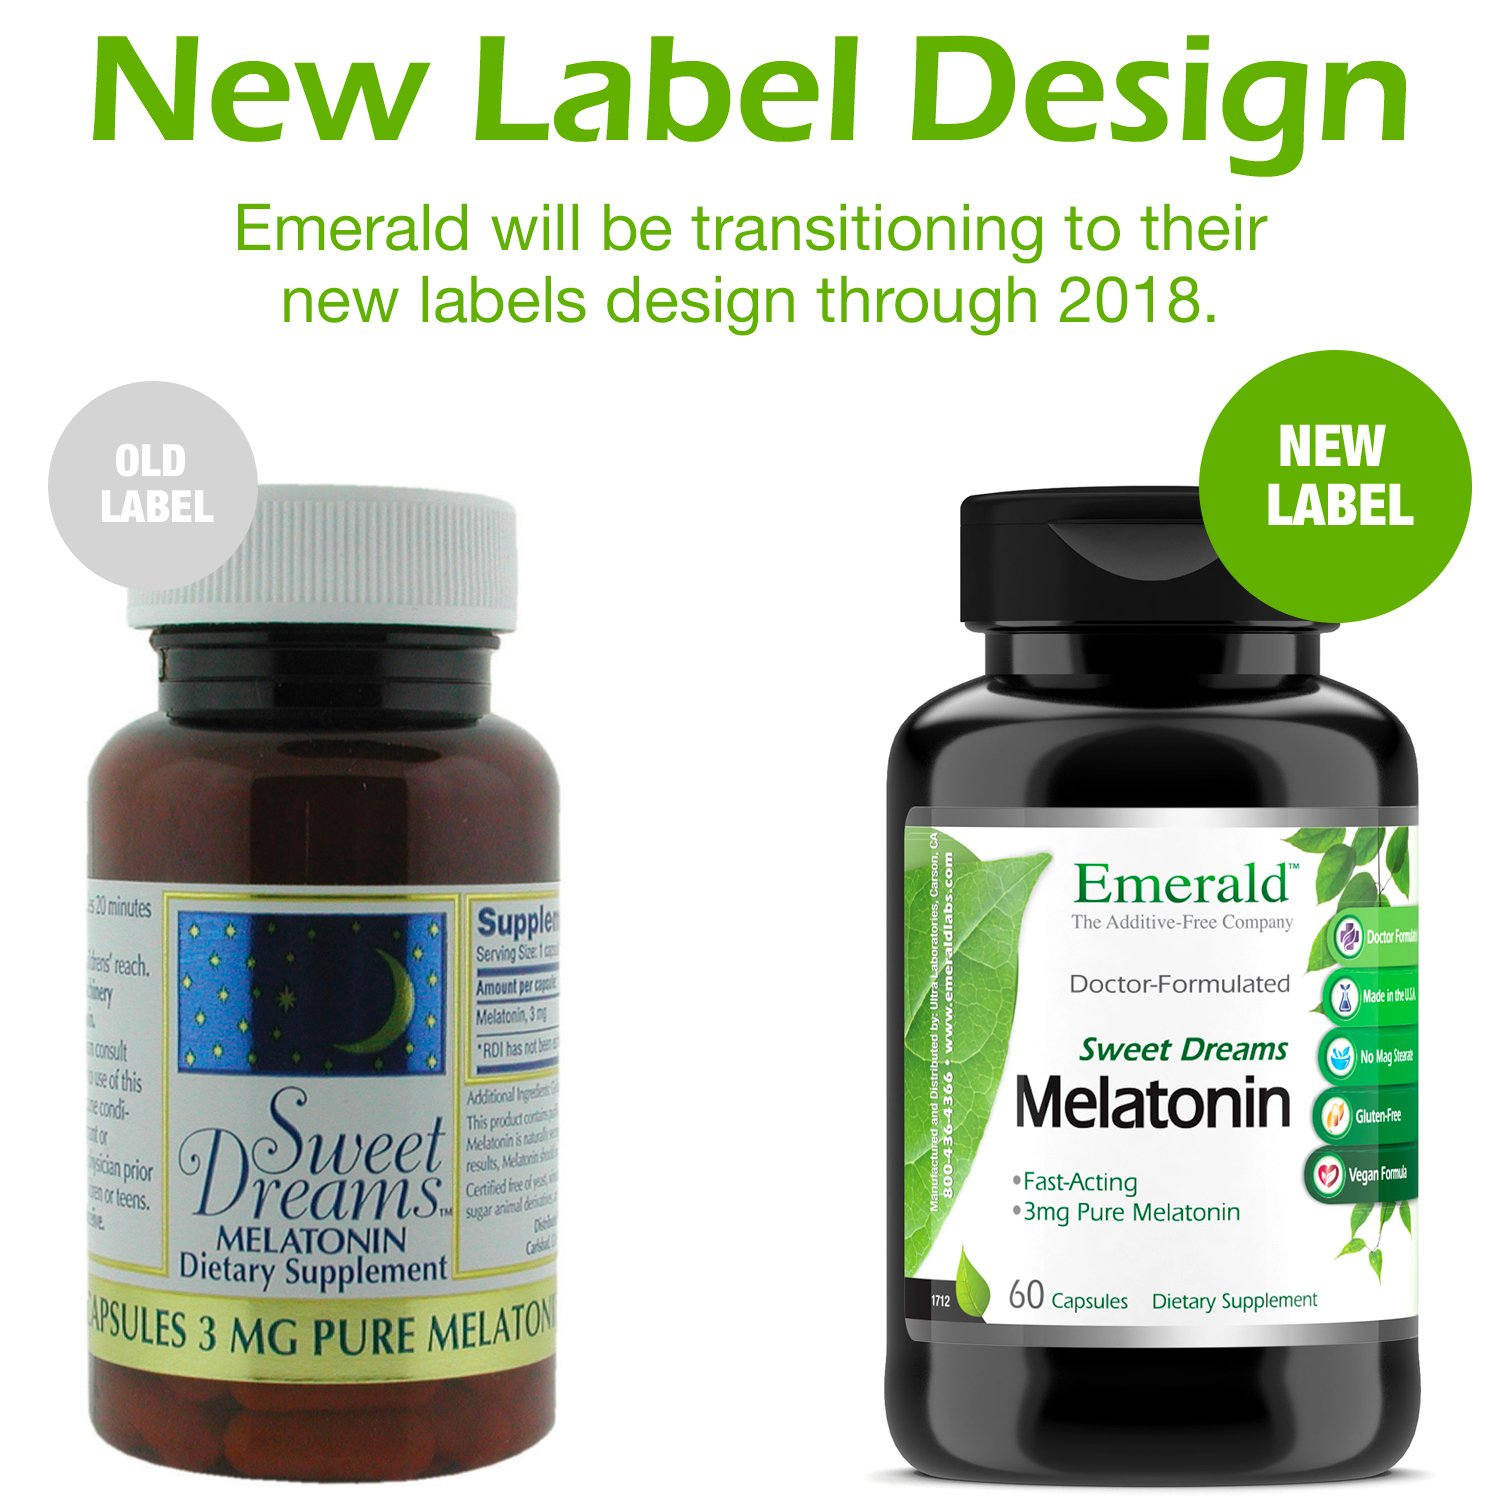 Amazon.com: Melatonin (3 mg) - Promotes Relaxation & Healthy Sleep Patterns, More Energy, Better Overall Health - Emerald Laboratories (Sweet Dreams) - 60 ...